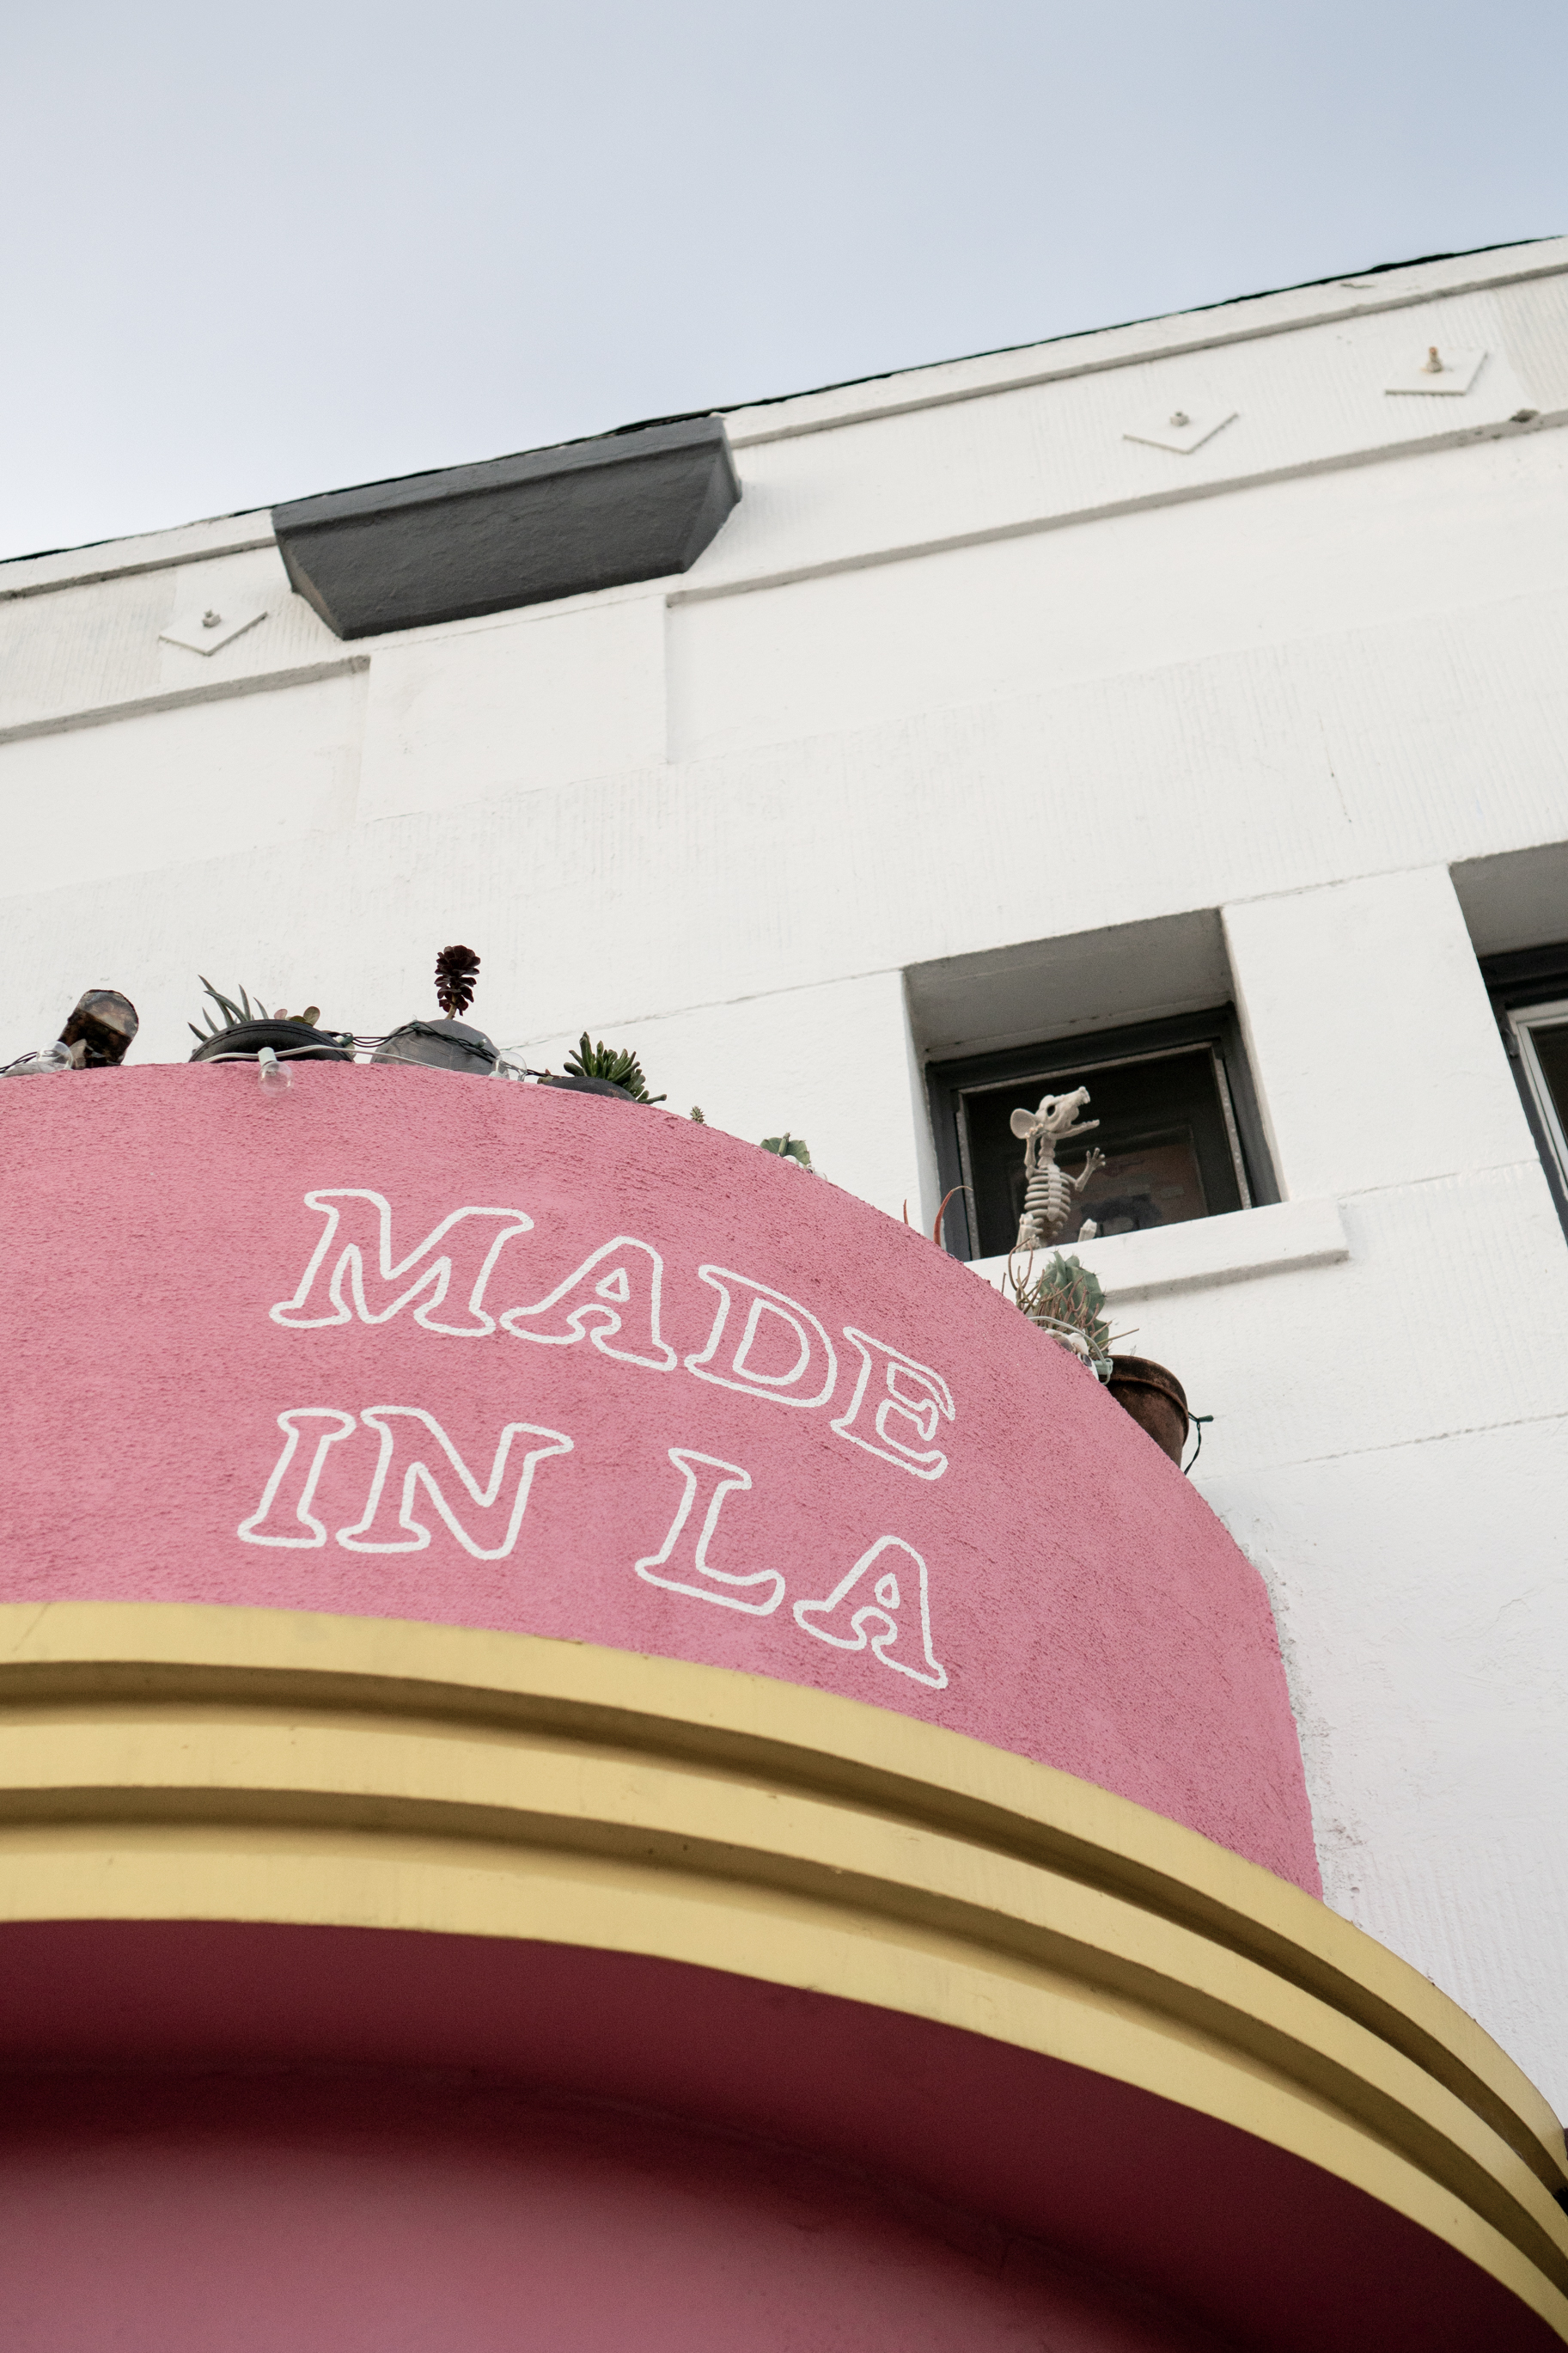 Made in LA, Los Angeles California. Photograph by Sarah Natsumi Moore